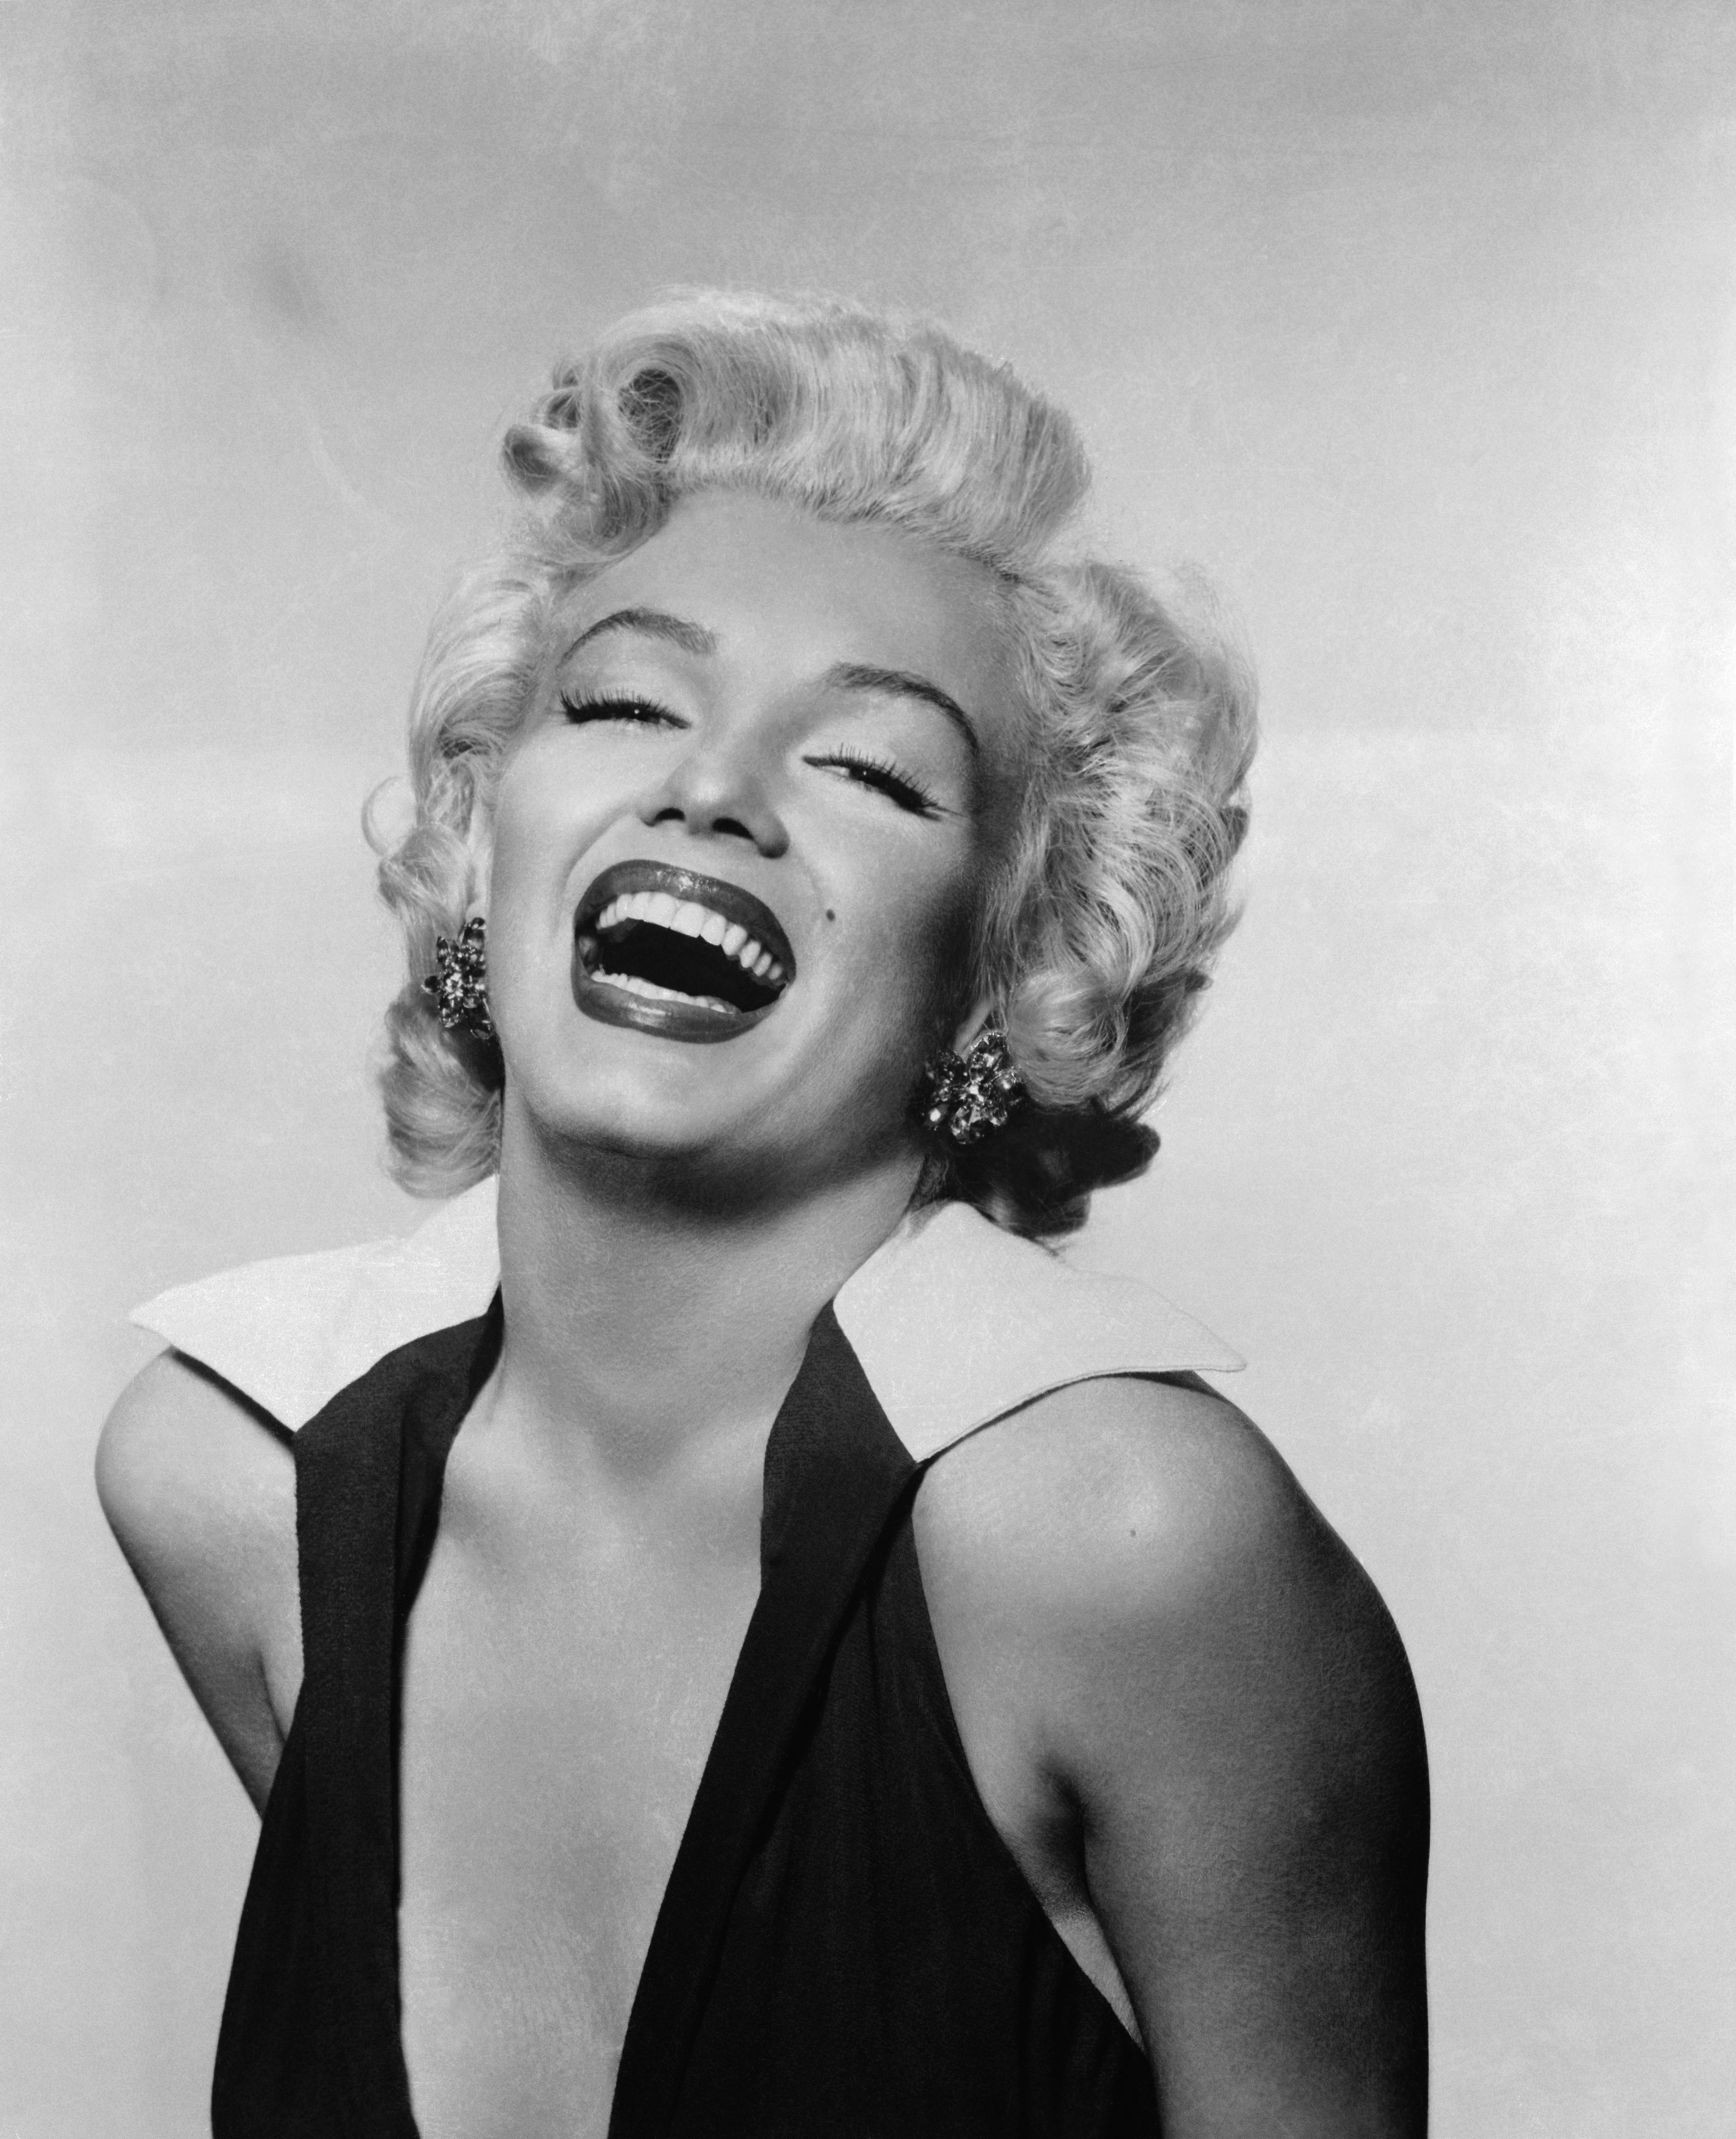 woman Marilyn Monroe monochrome HD Wallpaper